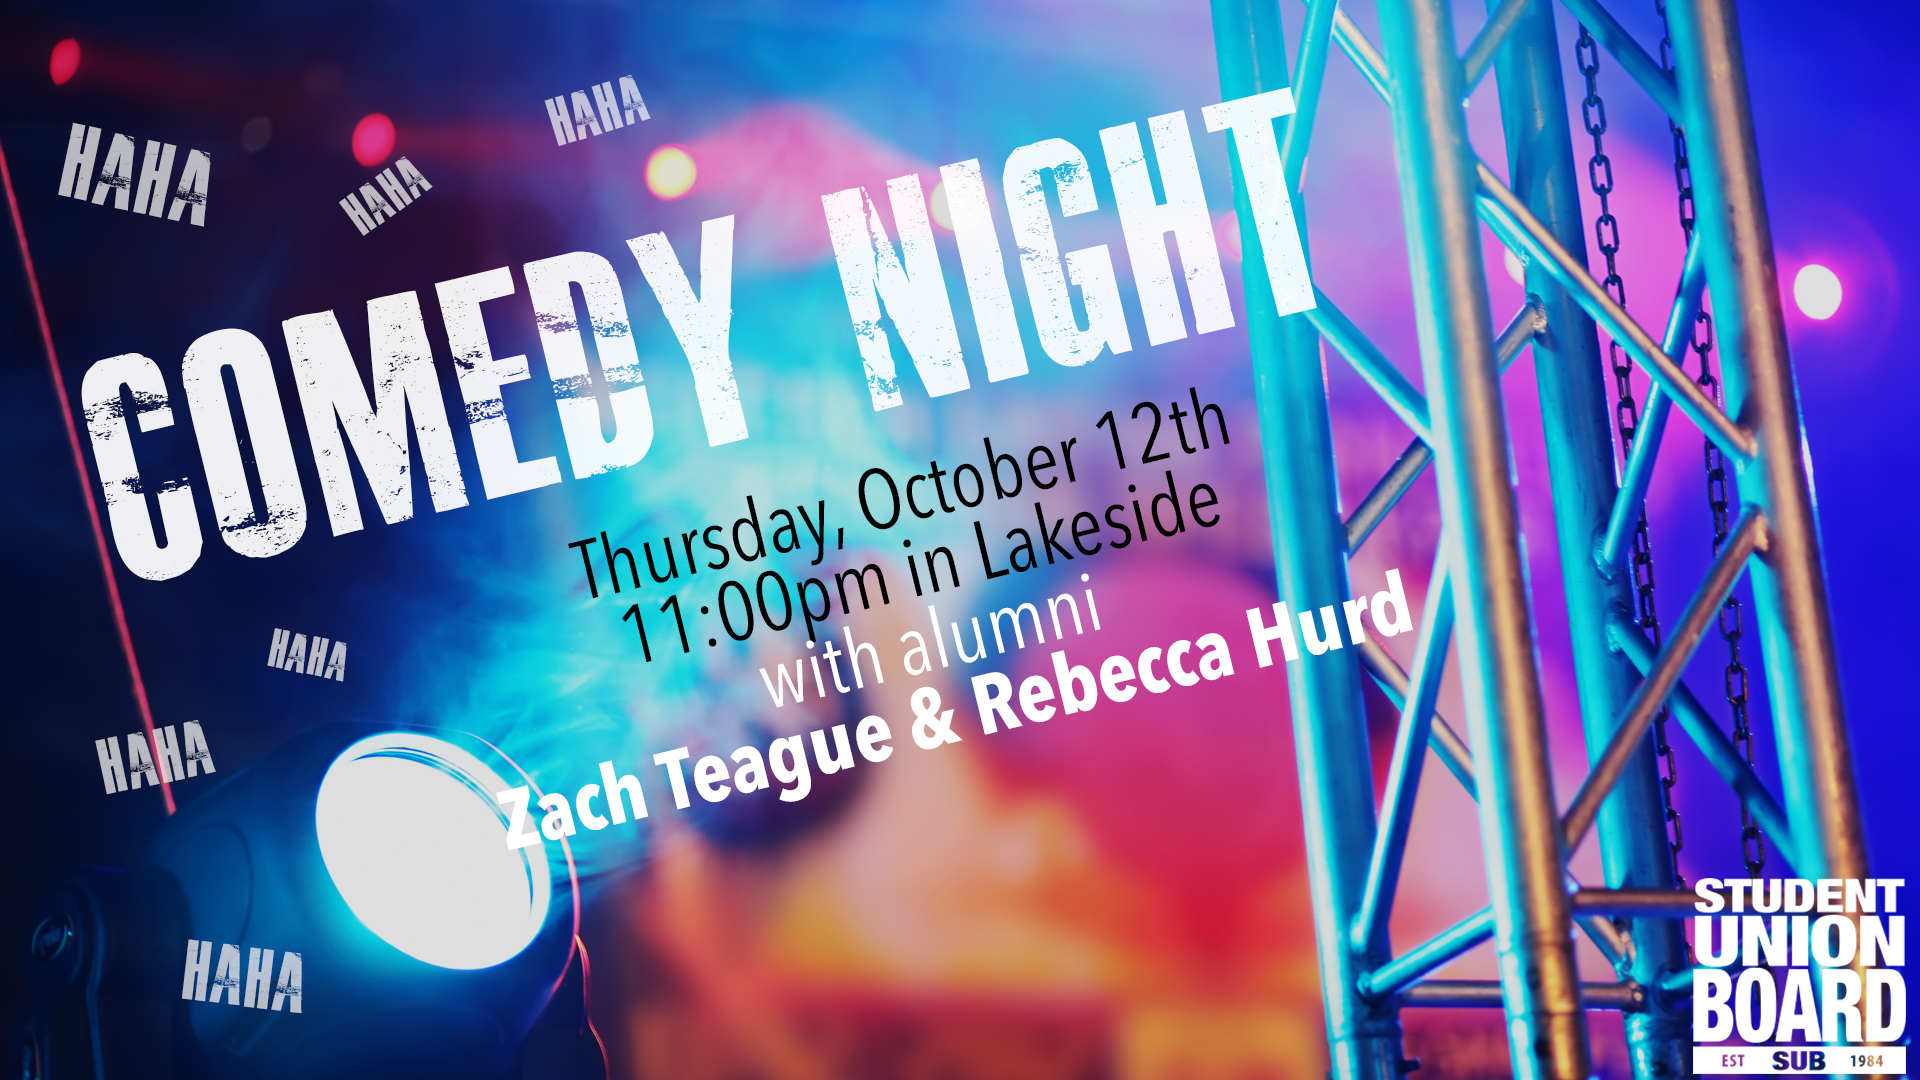 Come laugh it up with us before Fall Break! Elon alums Zach Teague and Rebecca Hurd are returning to campus to tell a few jokes and try to get some laughs! Come out and support them at 11 pm in Lakeside!